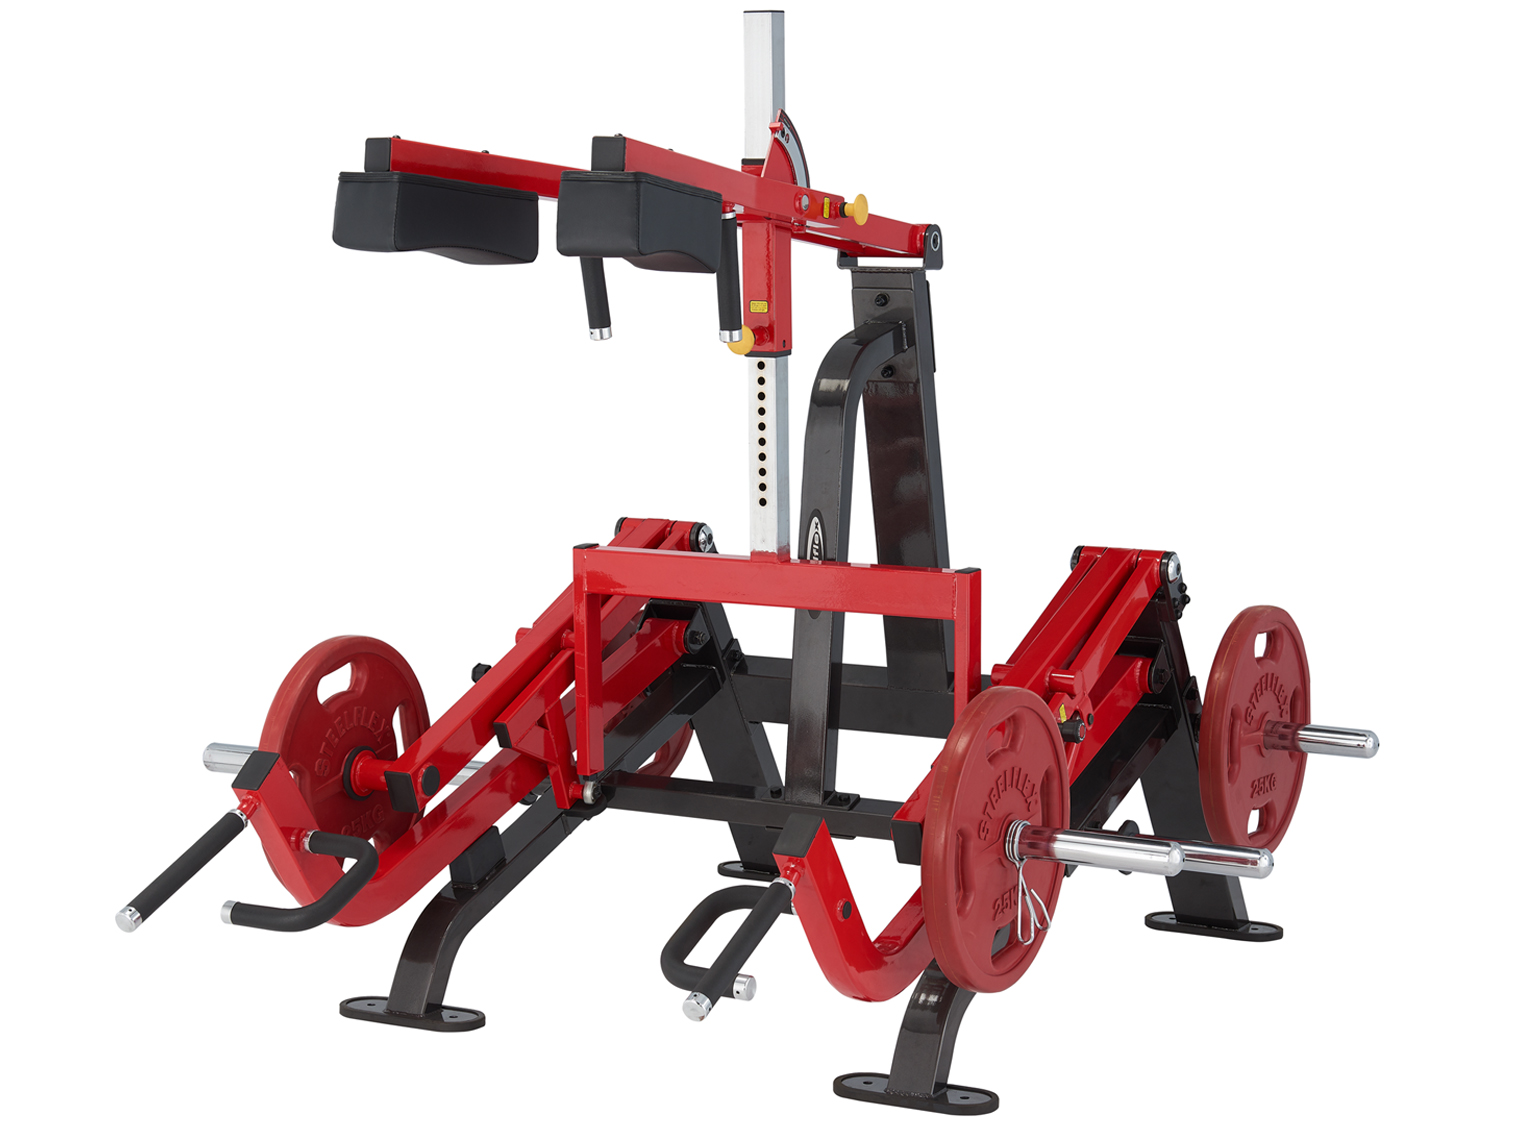 Steelflex Plate Loaded Series 2 Squat Lunge Machine